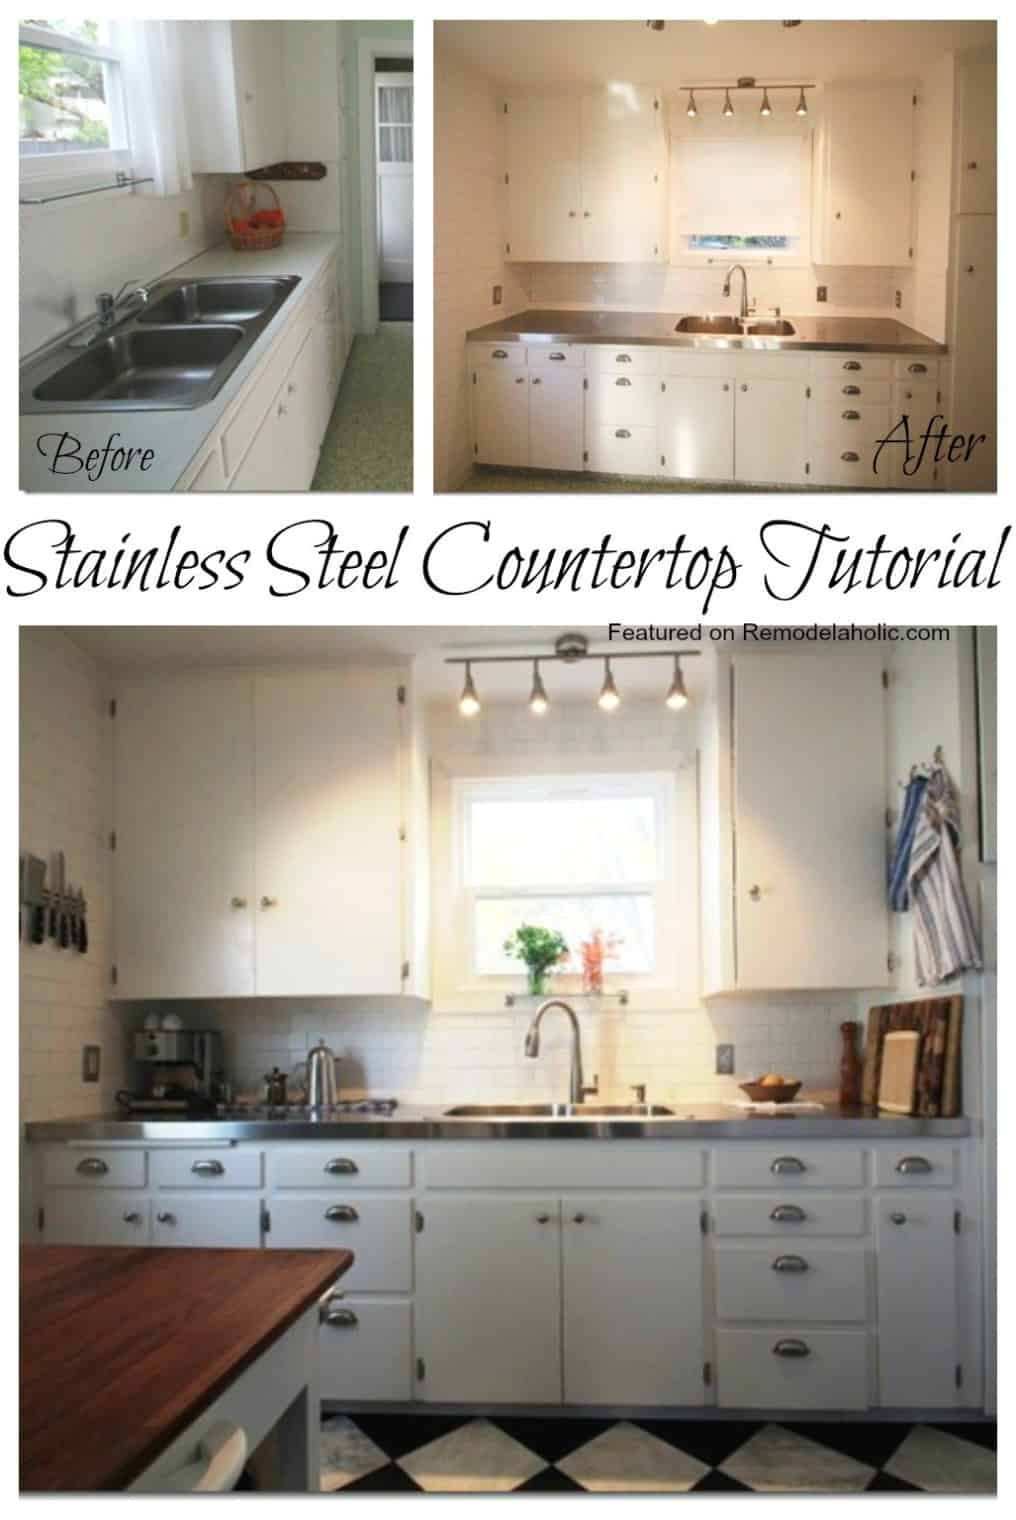 Affordable stainless steel countertops